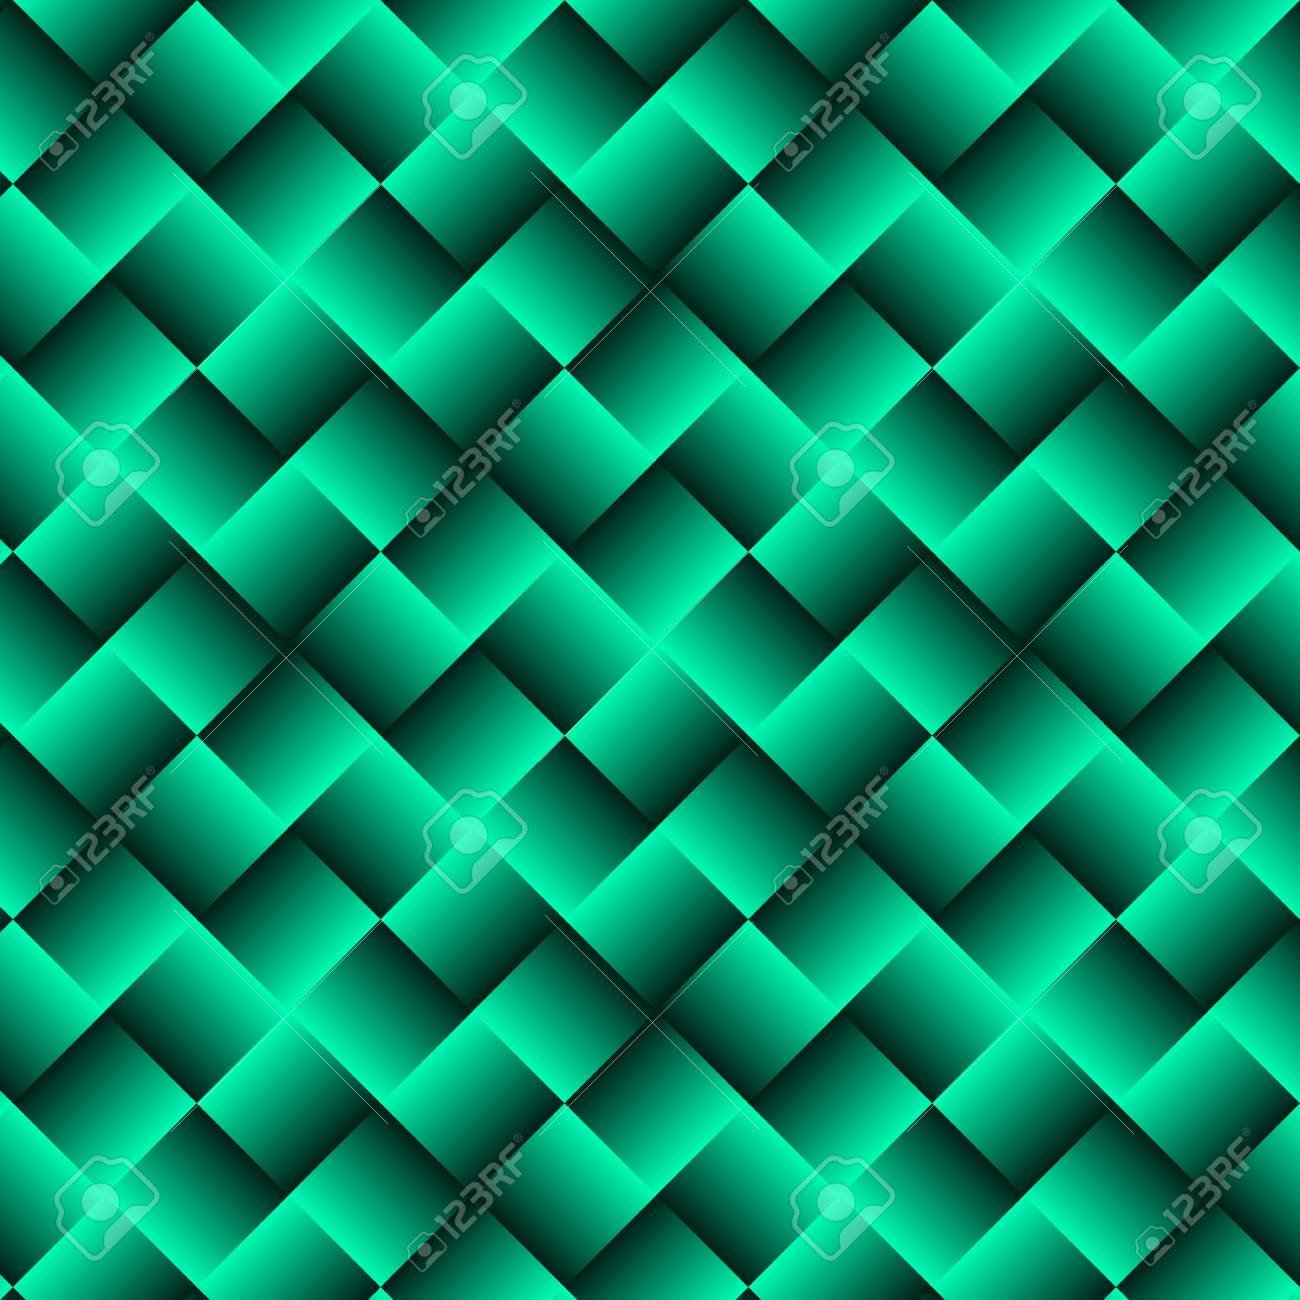 Green Geometric Background With Squares Abstract Wallpaper